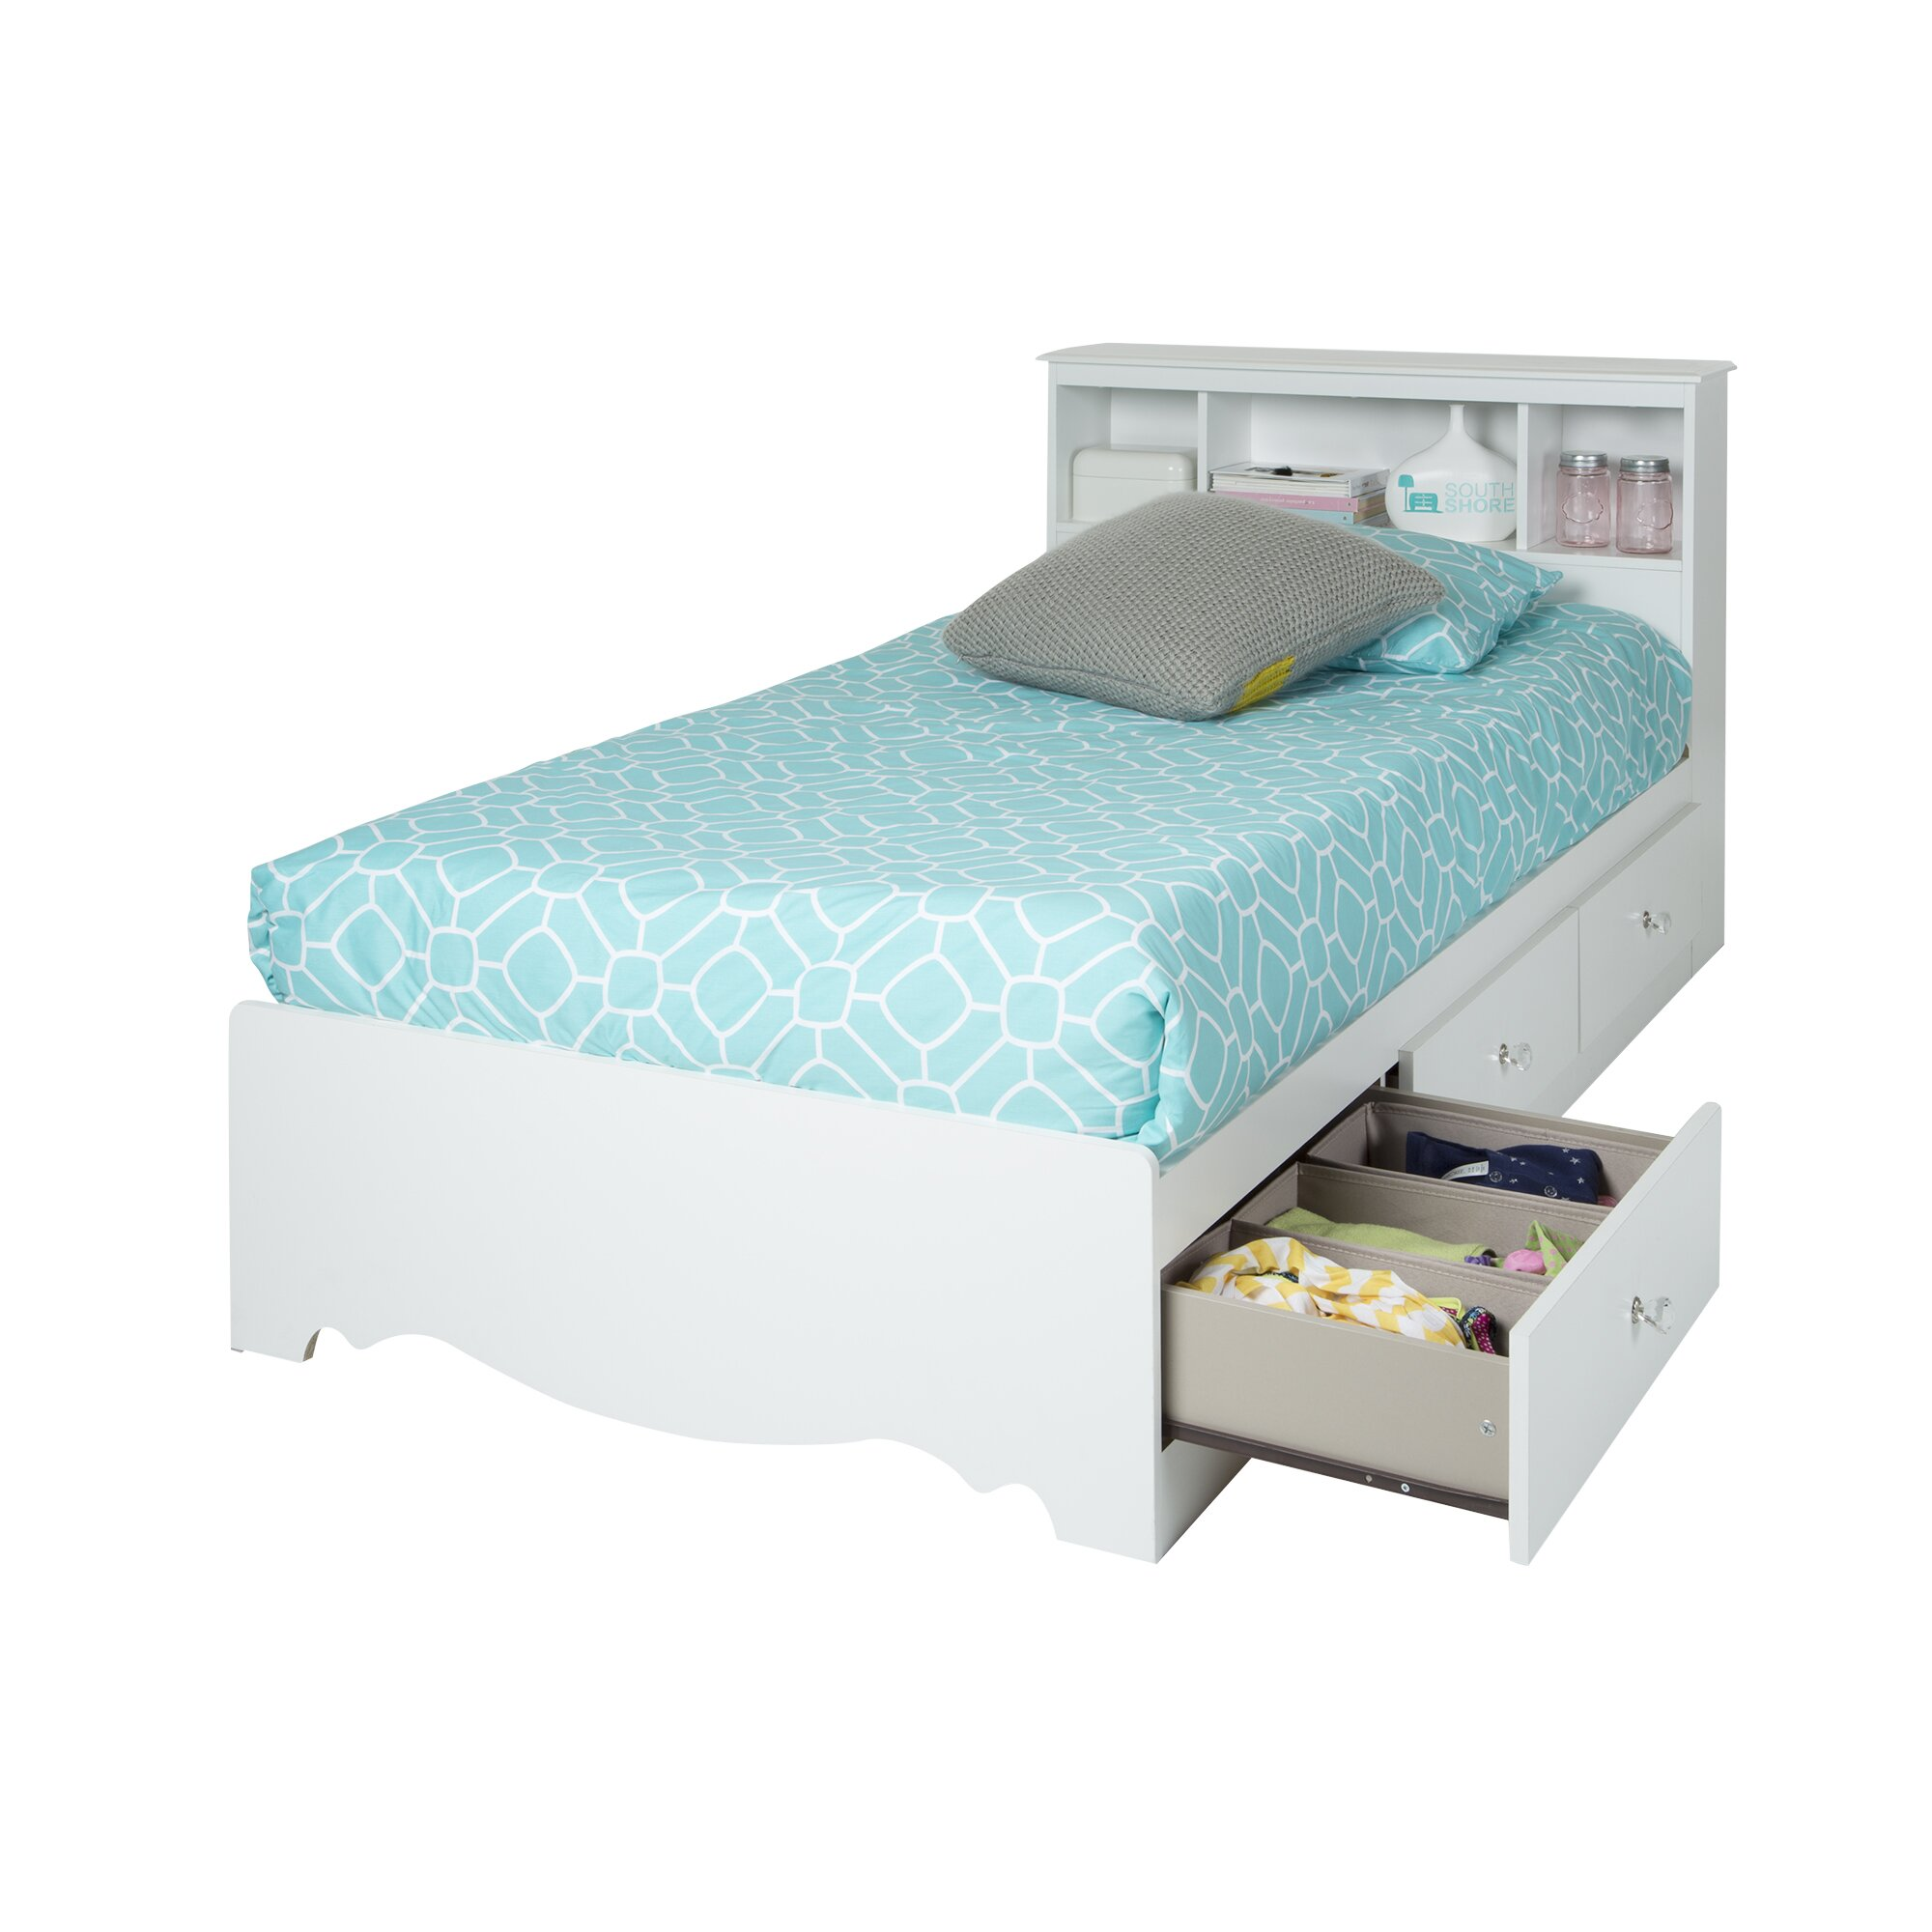 South Shore Crystal Full Mate S Bed With Storage